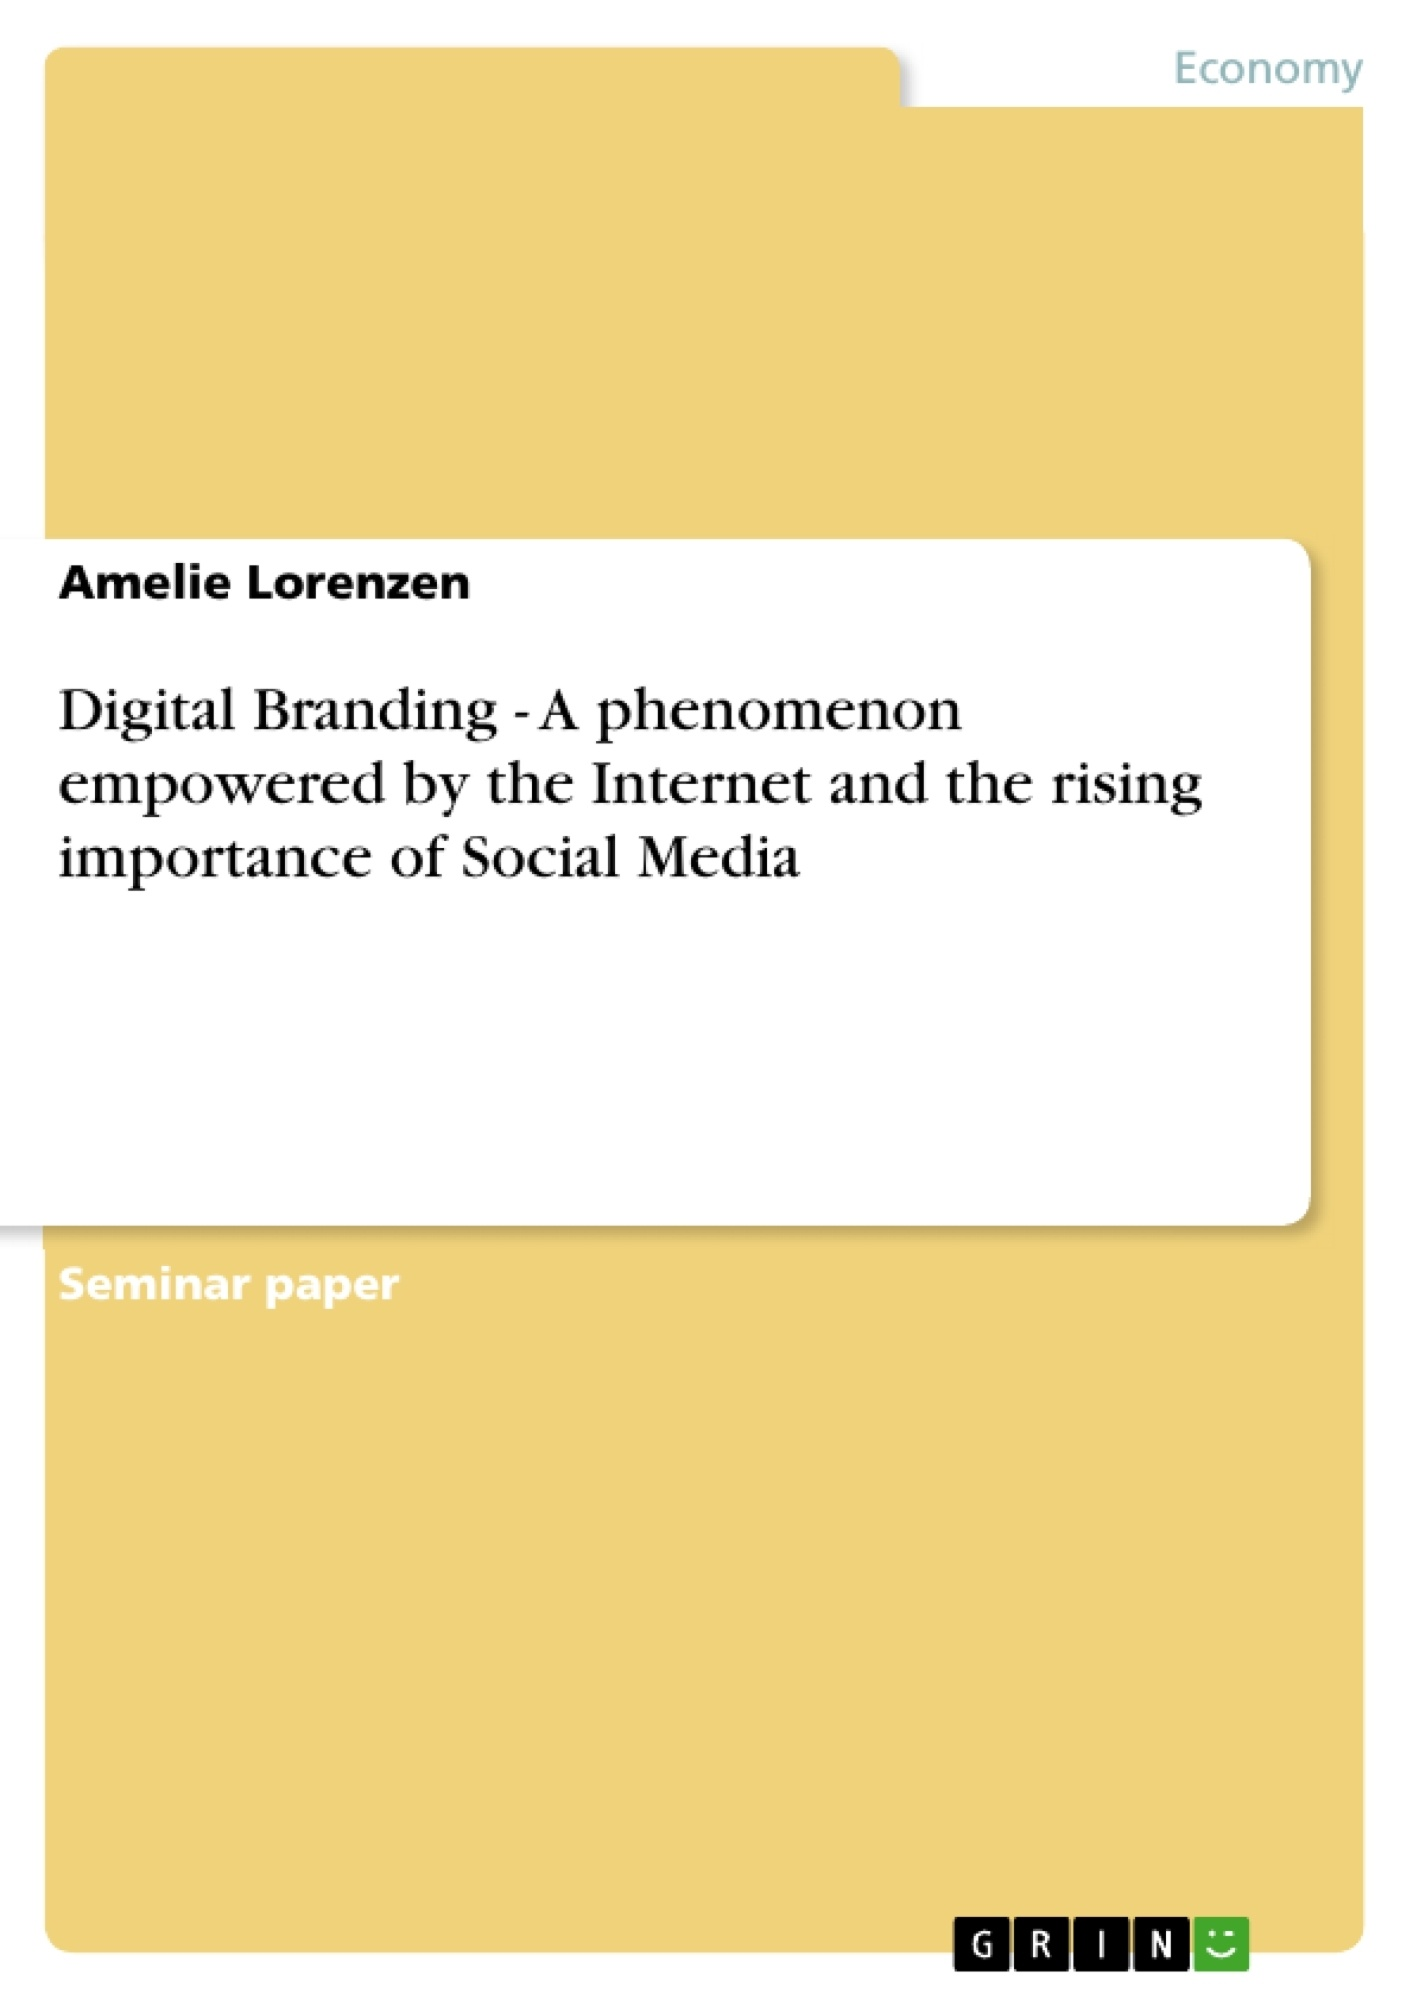 Title: Digital Branding - A phenomenon empowered by the Internet and the rising importance of Social Media